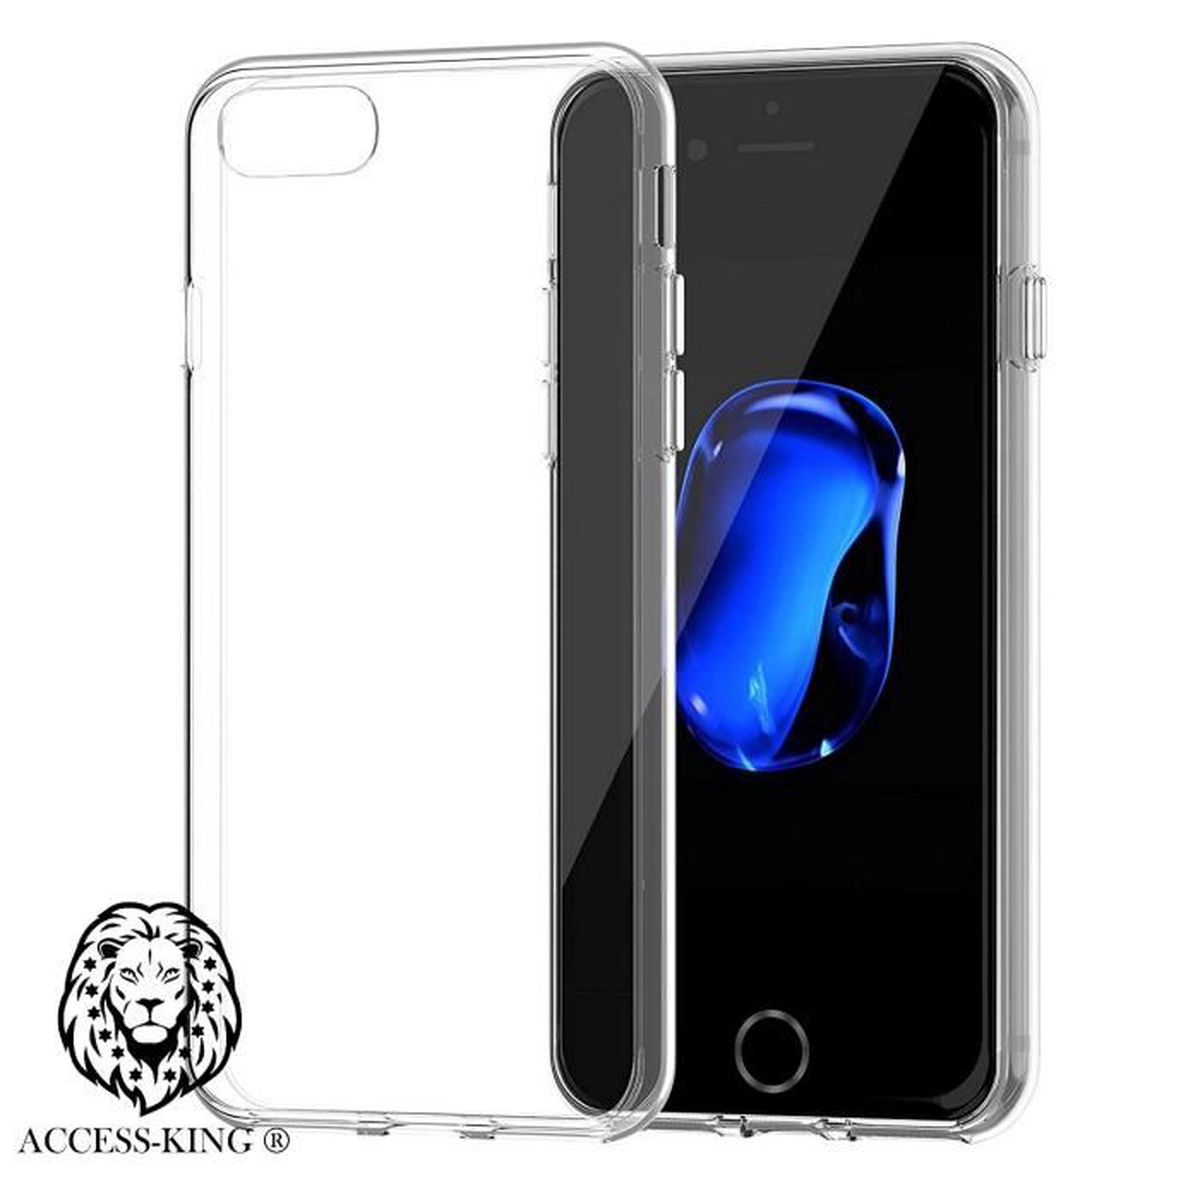 Housse iphone 7 de protection transparente en silicone tpu for Housse silicone iphone 7